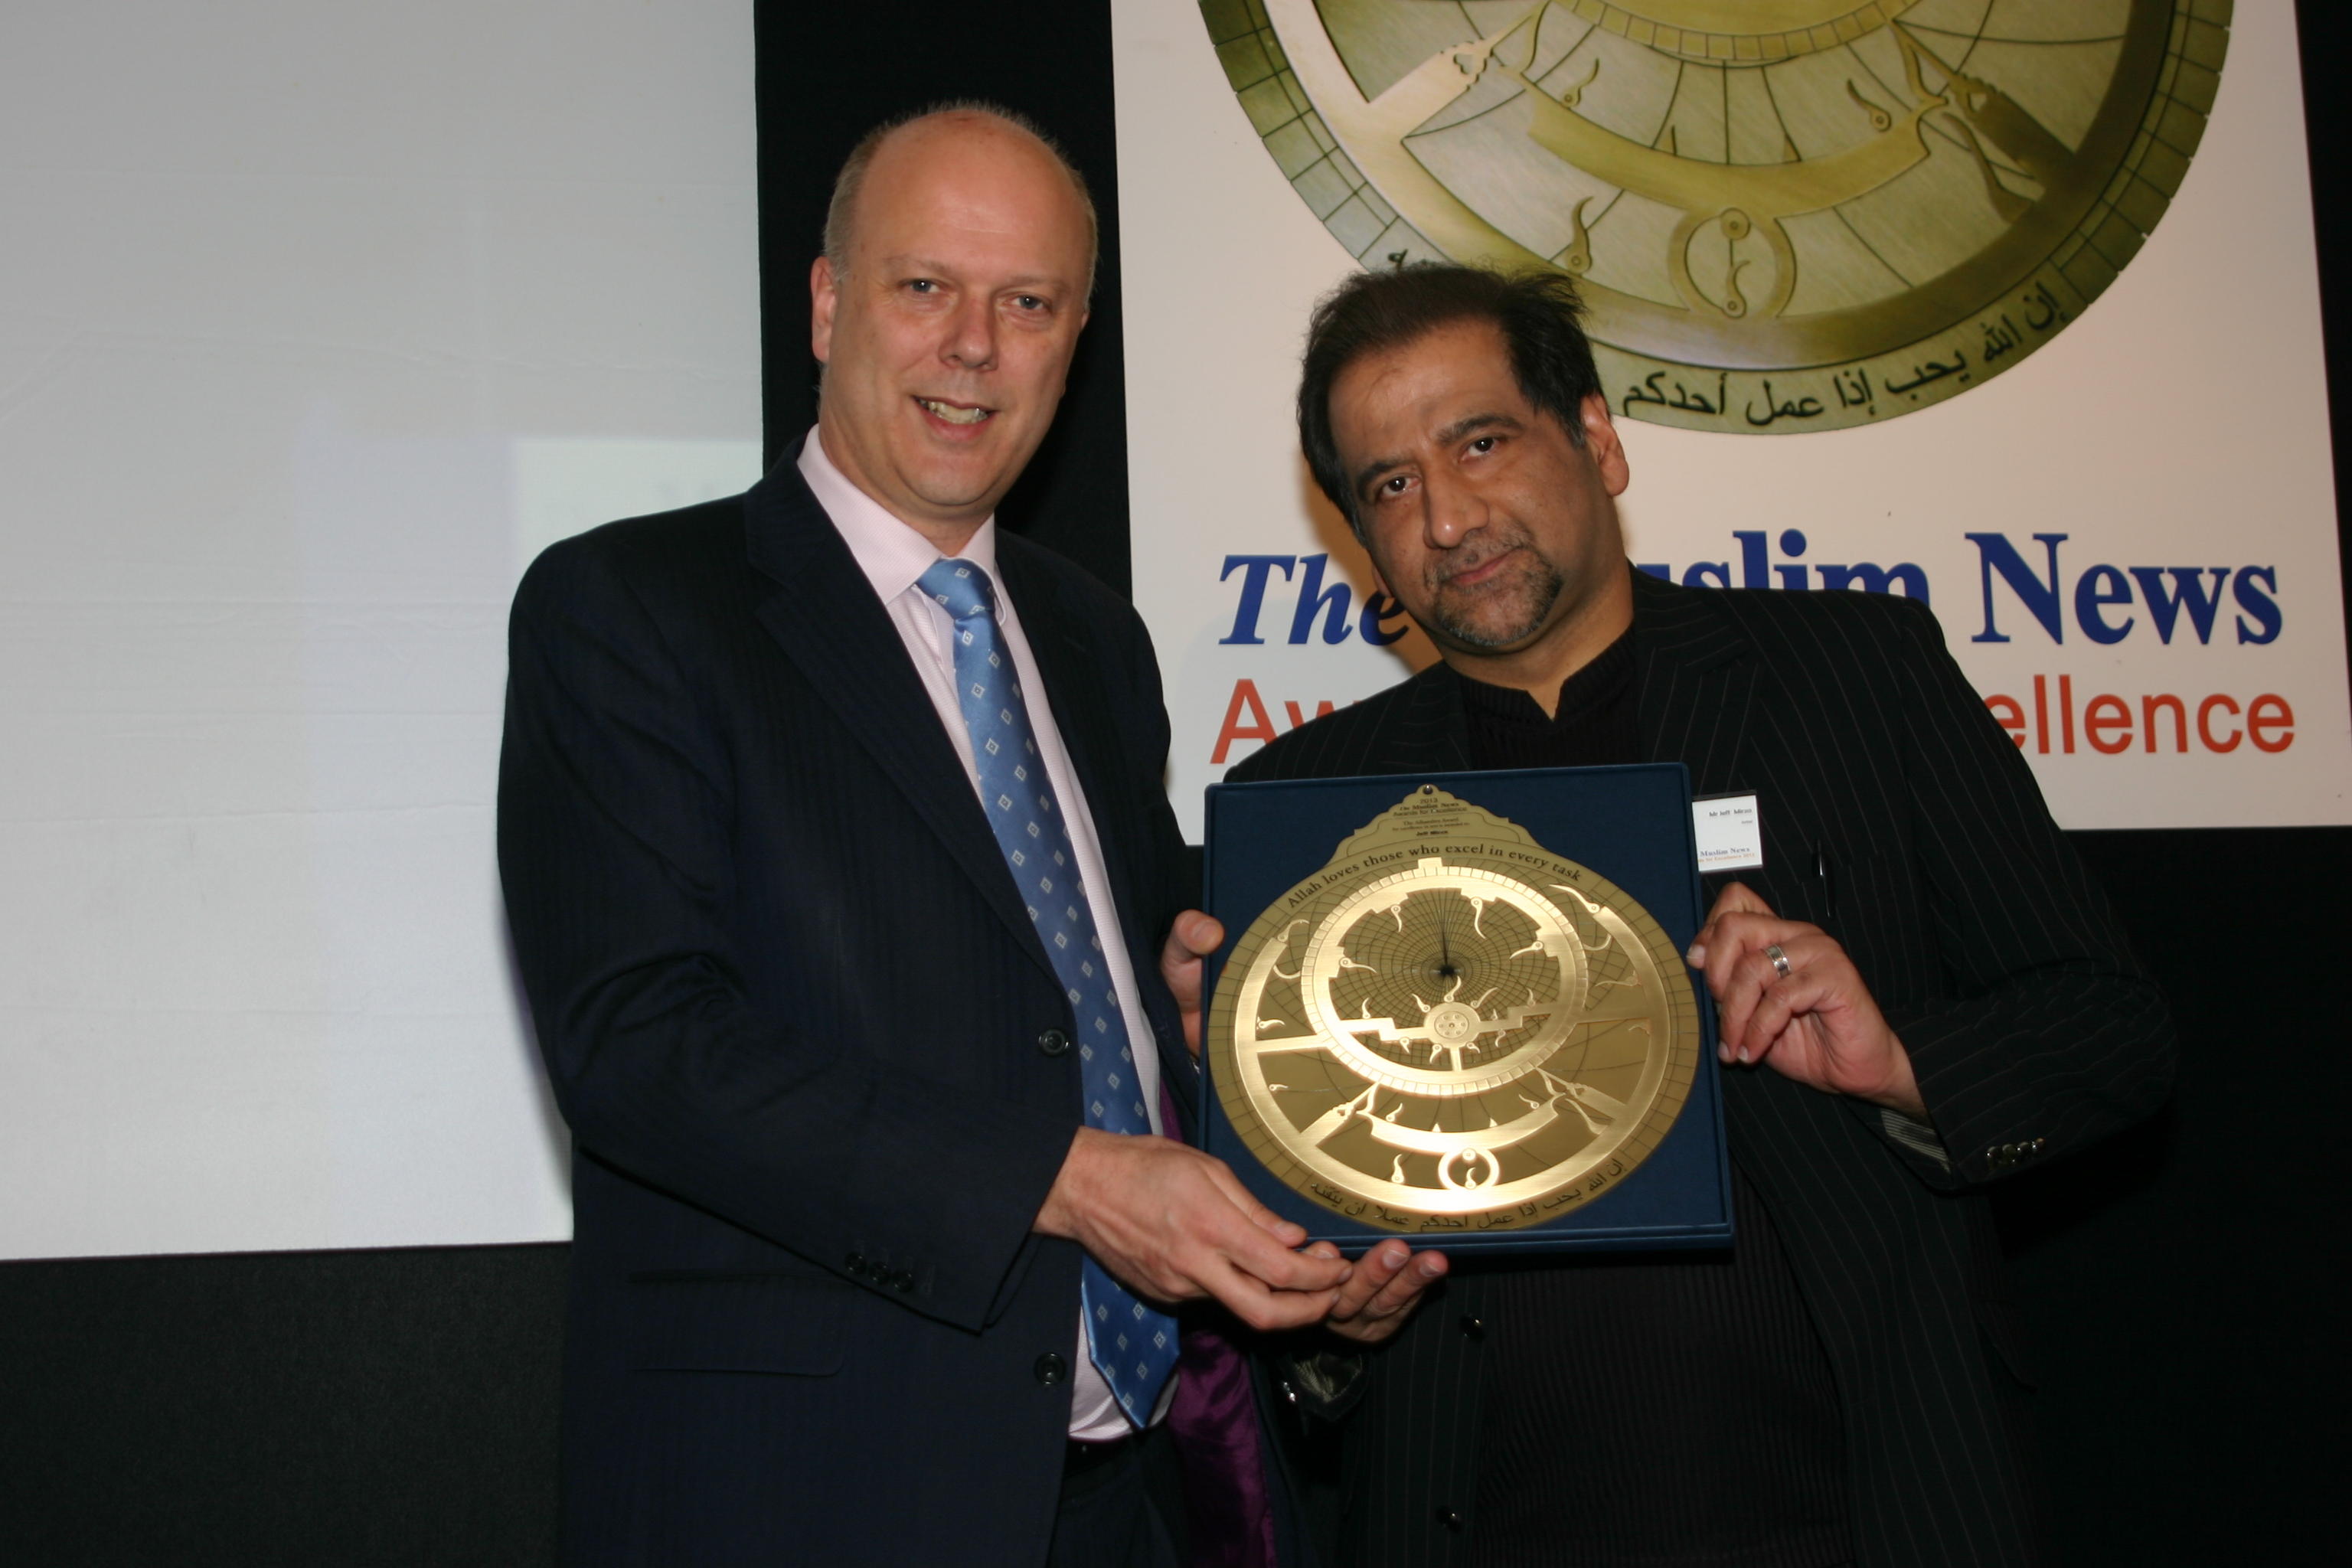 Uk muslims press for peace at 10 downing street - Justice Secretary Rt Hon Chris Grayling Mp Presenting Alhambra Arts Award To Comedian And Actor Jeff Mirza At The Muslim News Awards For Excellence Gala